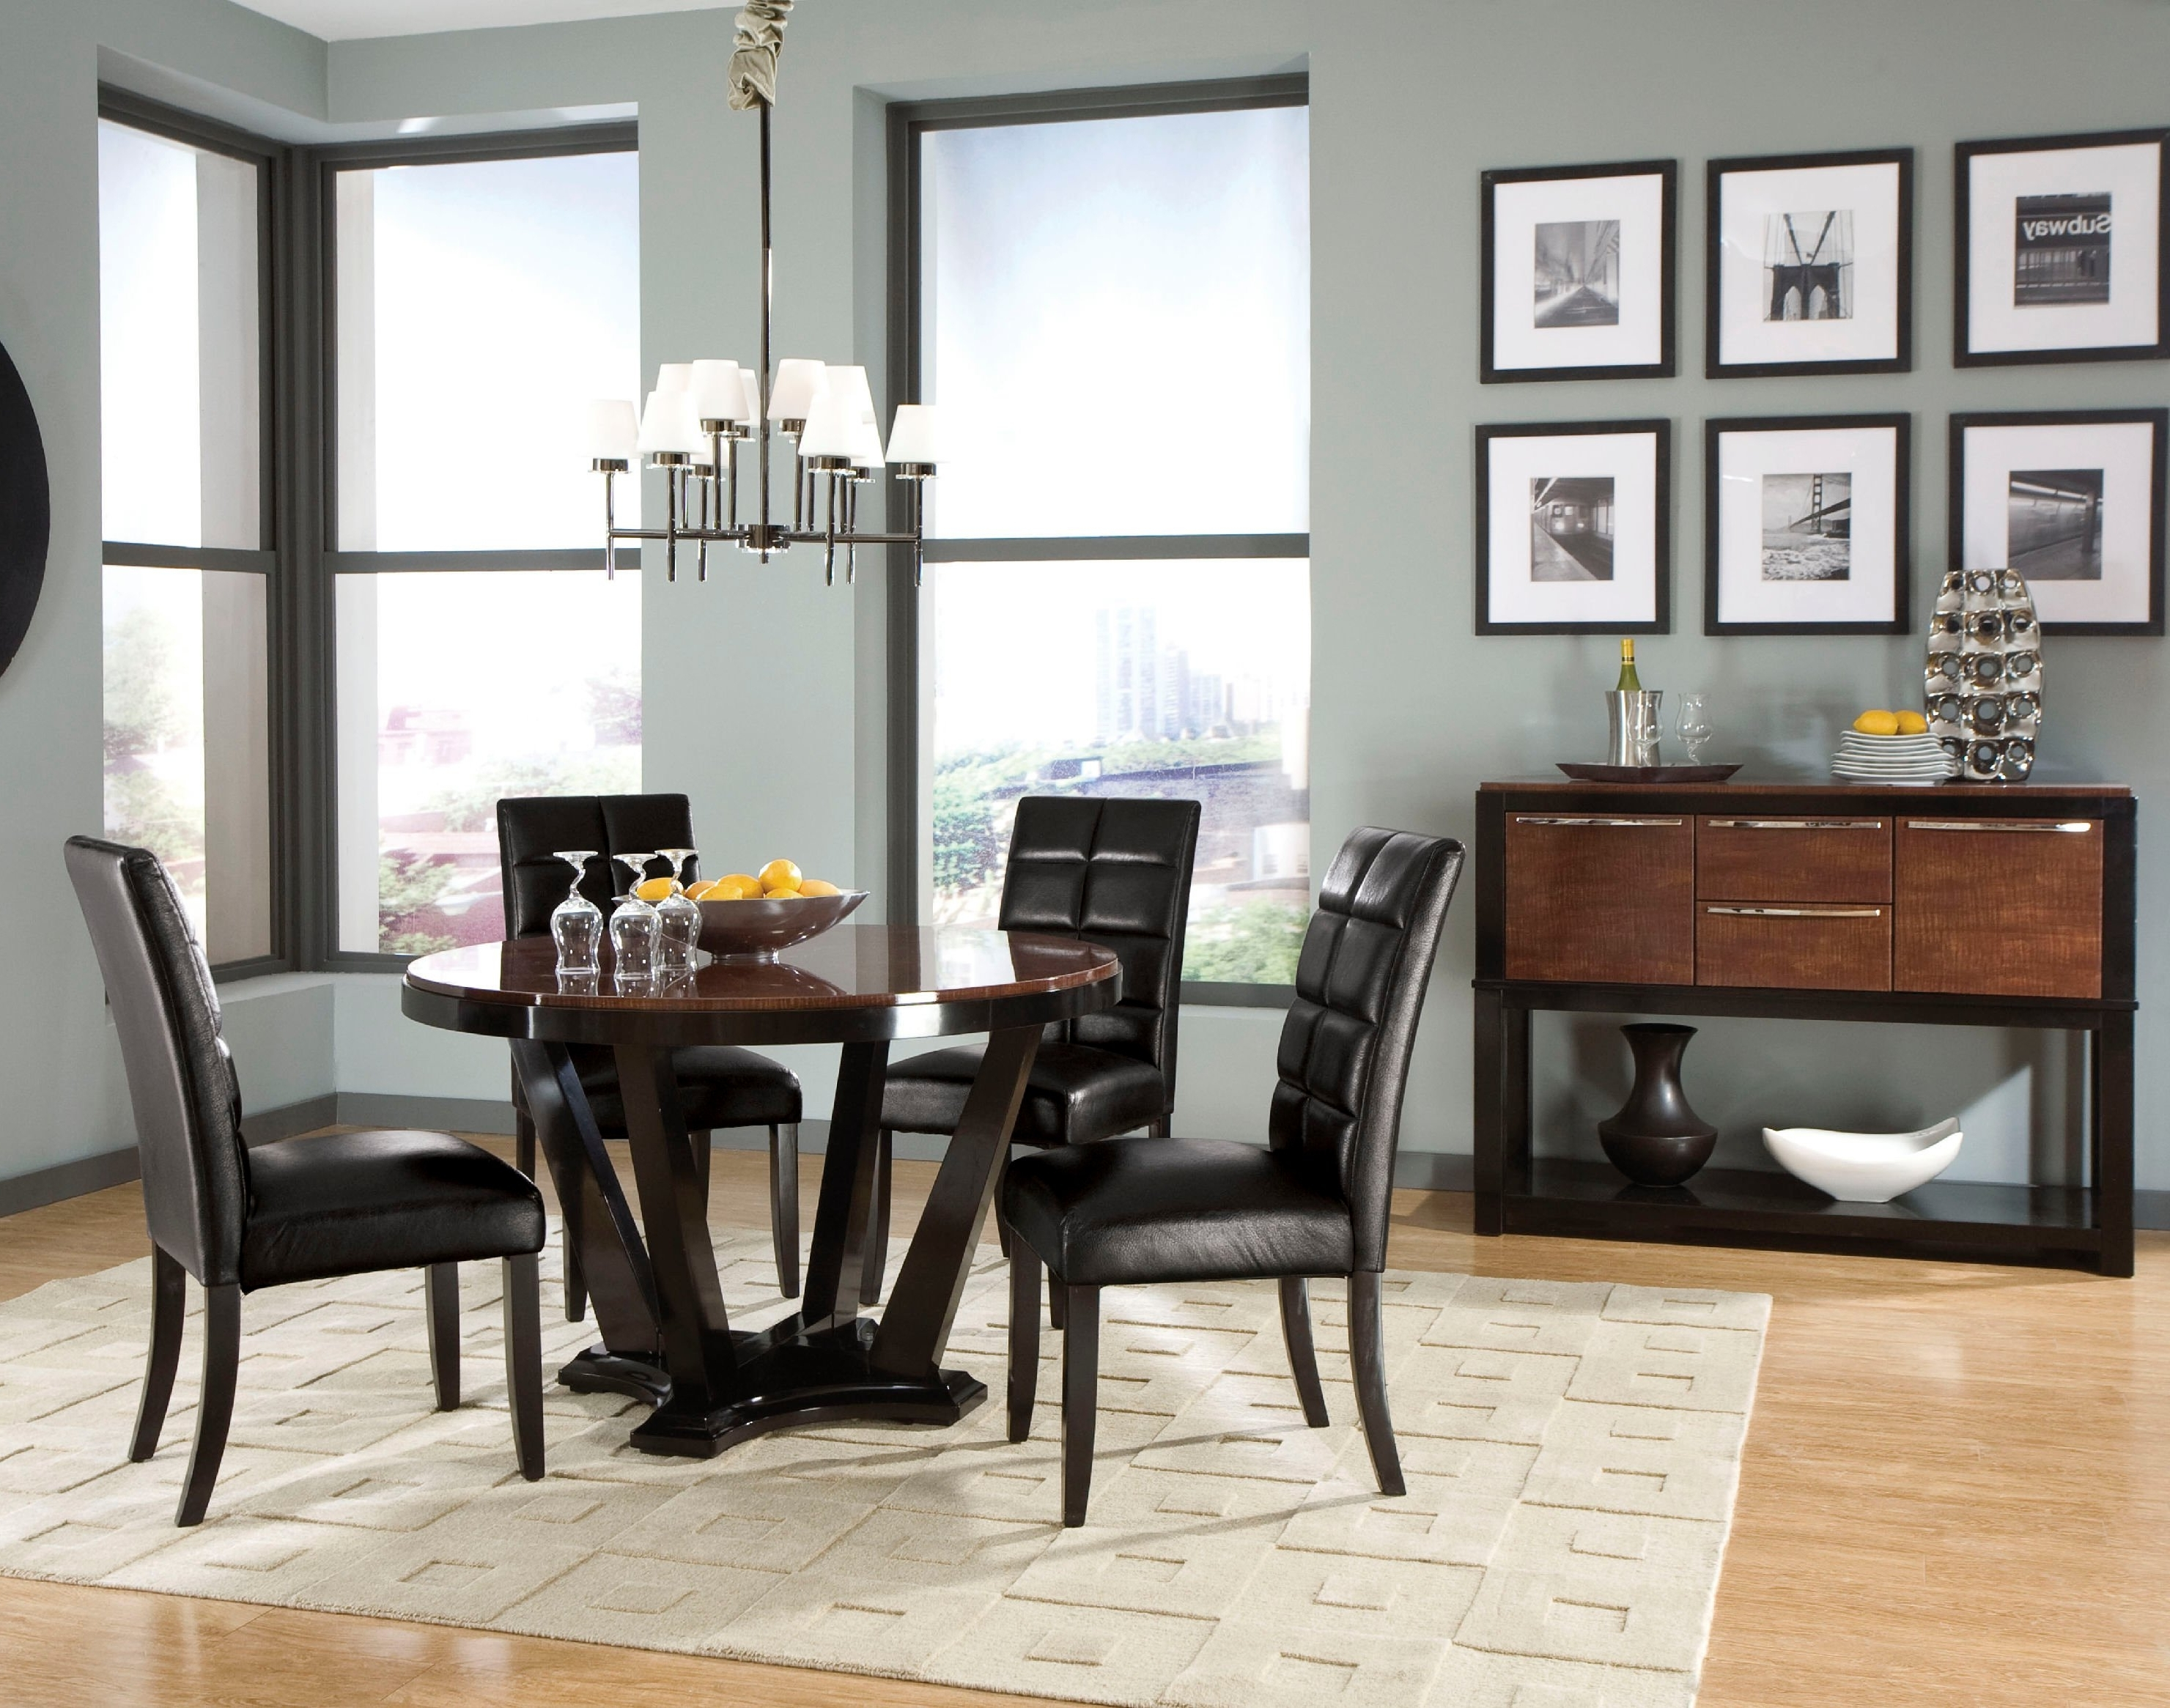 Solid Dark Wood Dining Tables Within Favorite Remarkable Round Two Tone High Gloss Finish Mahogany Wood (View 24 of 25)